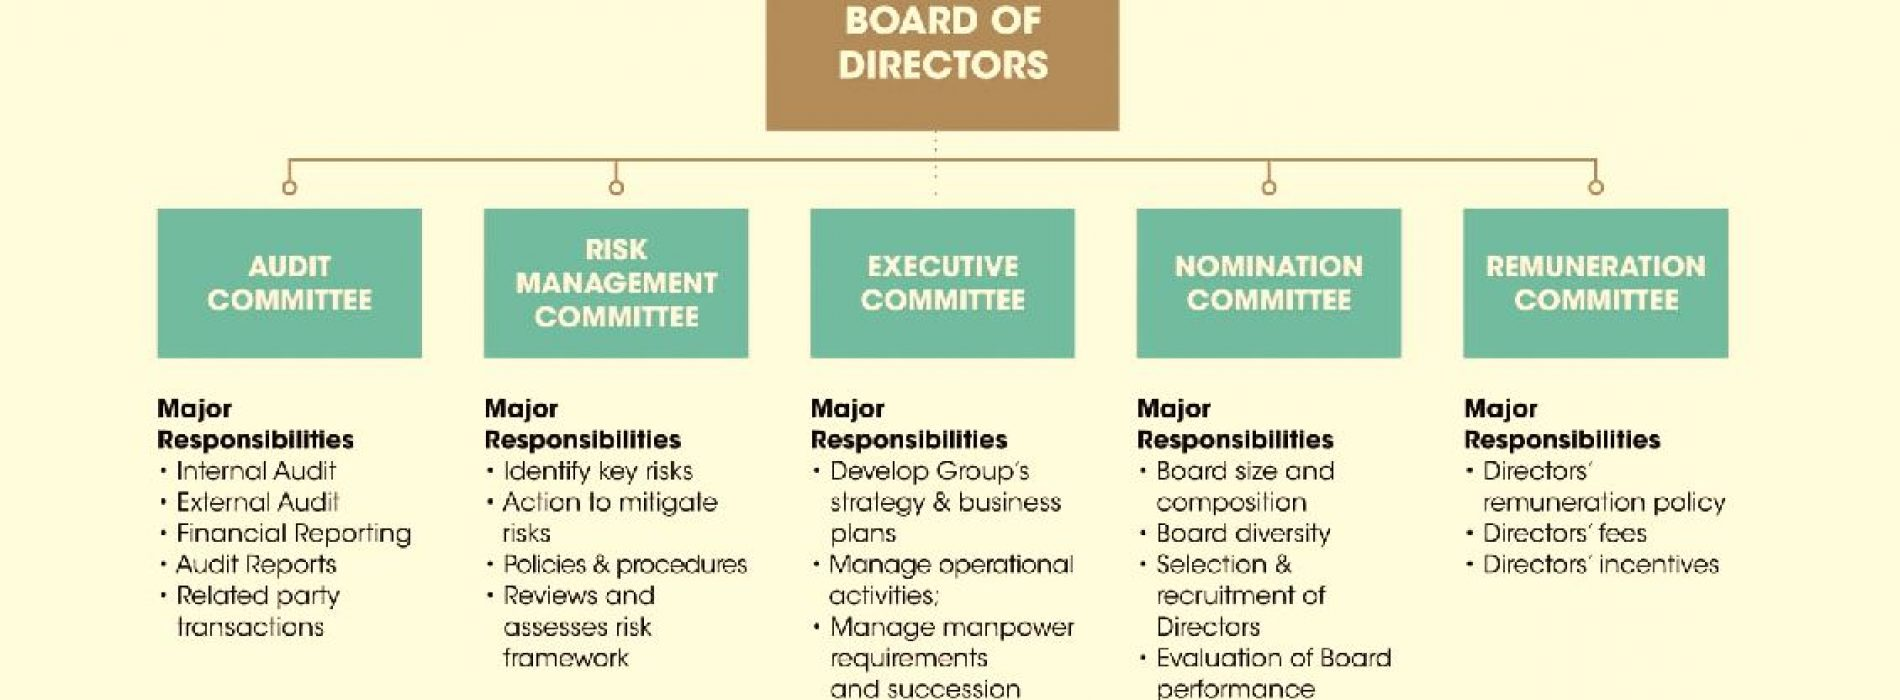 Responsibilities of  the Board of Directors